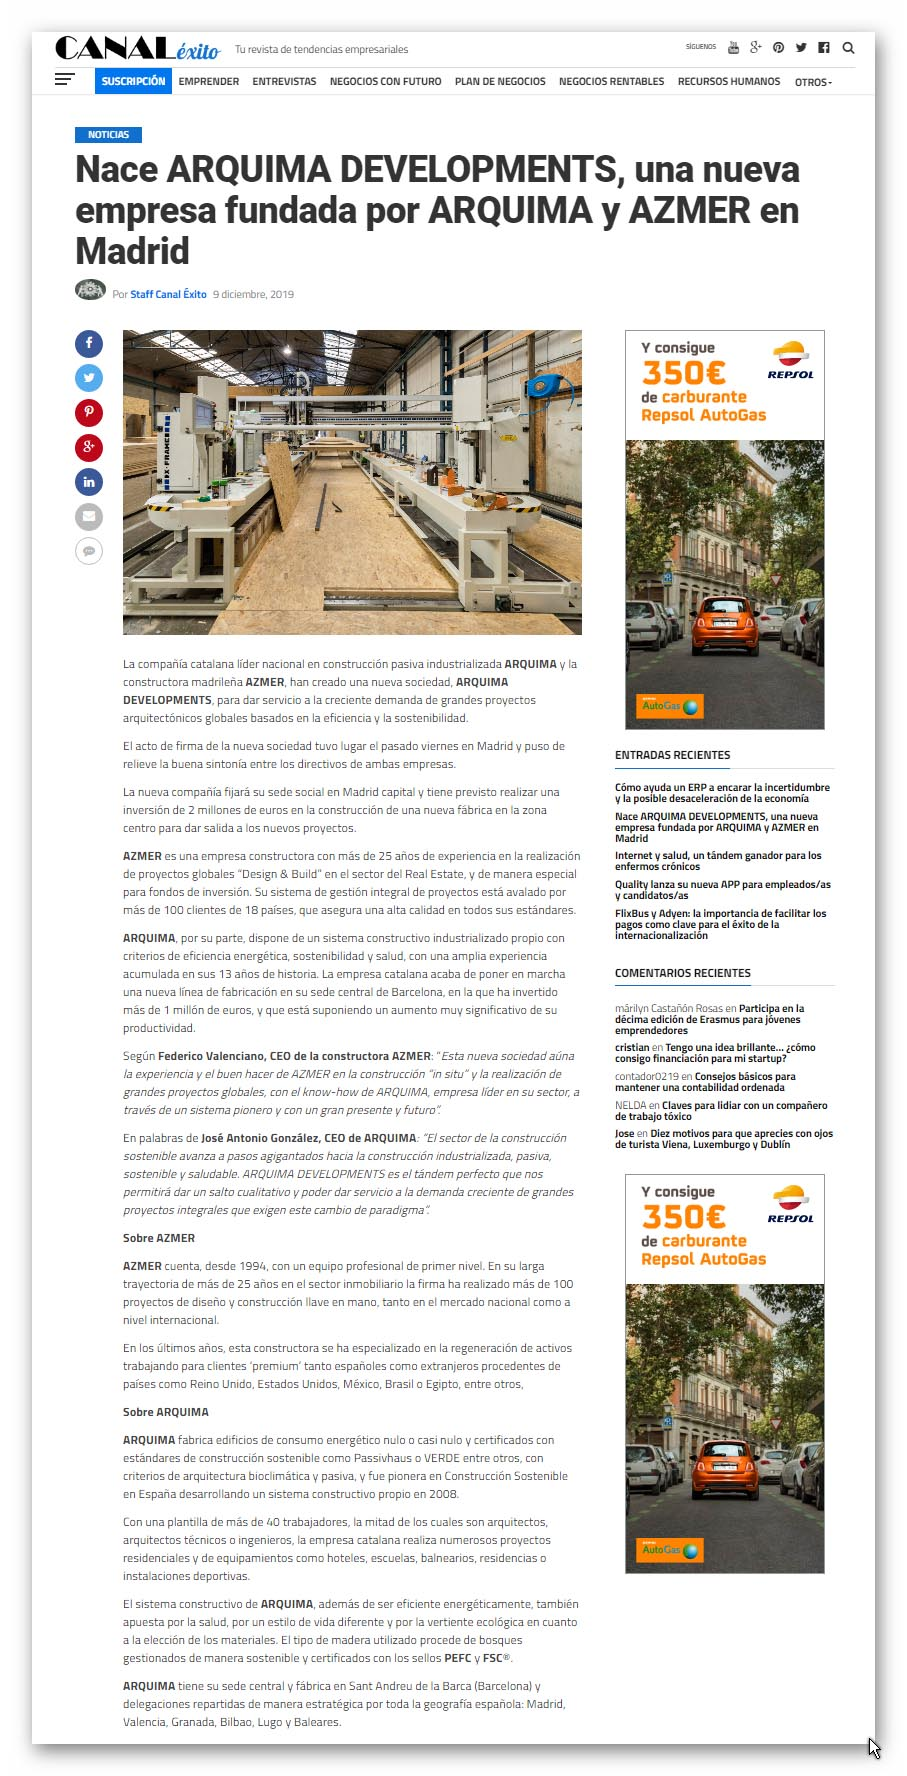 canalexito.es - Arquima developments